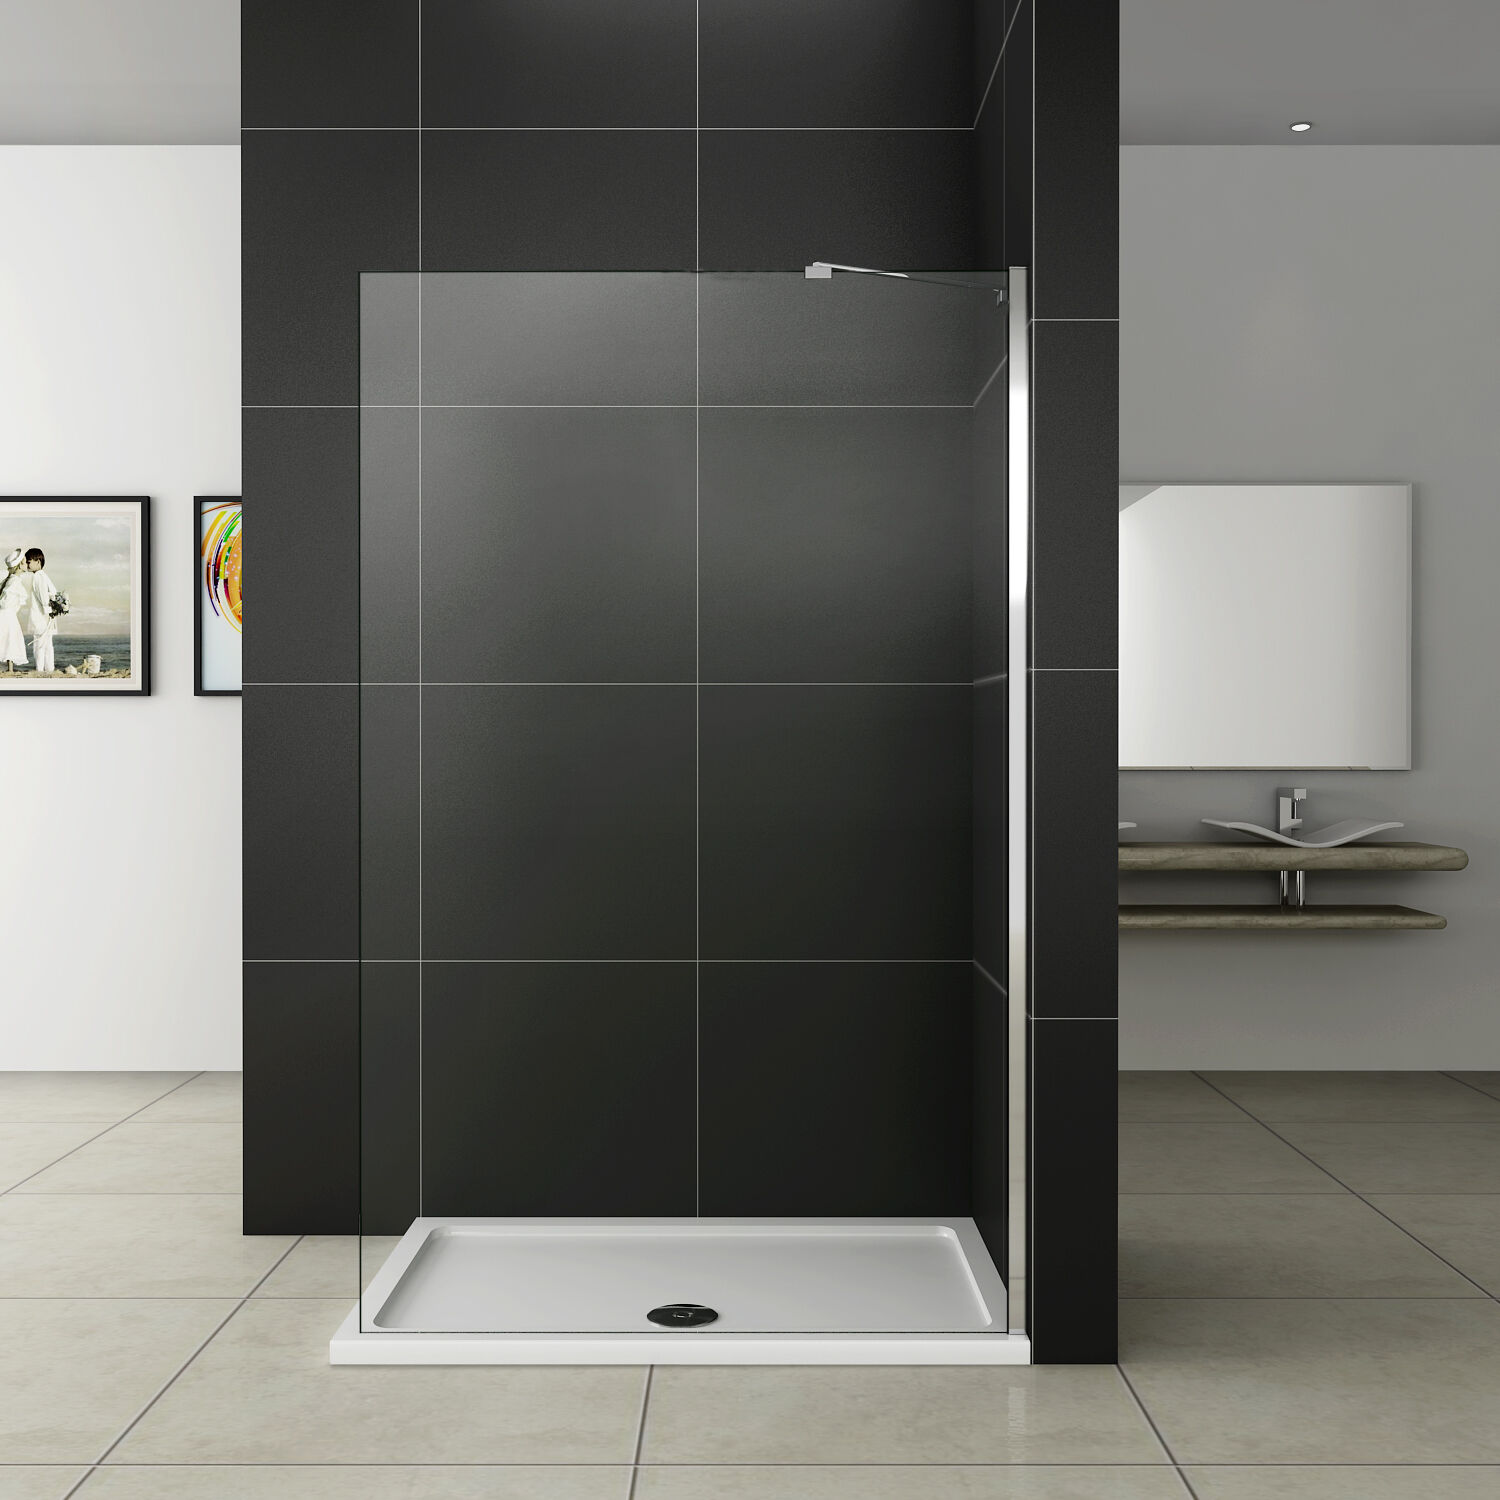 duschabtrennung walk in duschwand dusche 6mm glaswand duschkabine 80x185cm whn80 ebay. Black Bedroom Furniture Sets. Home Design Ideas